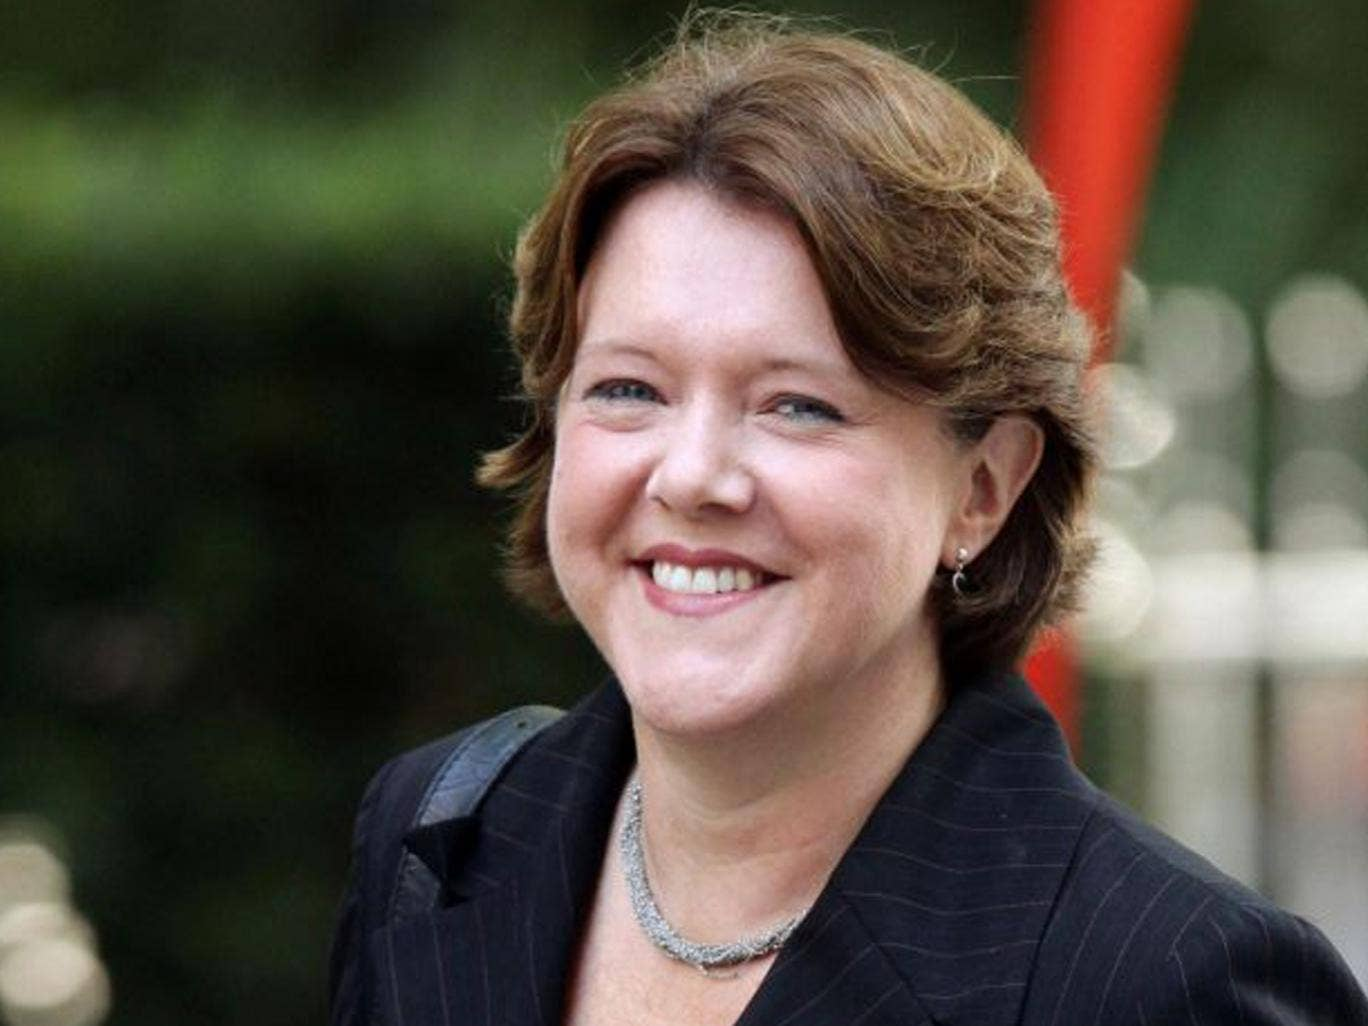 Plans will be launched by Culture Secretary Maria Miller next week